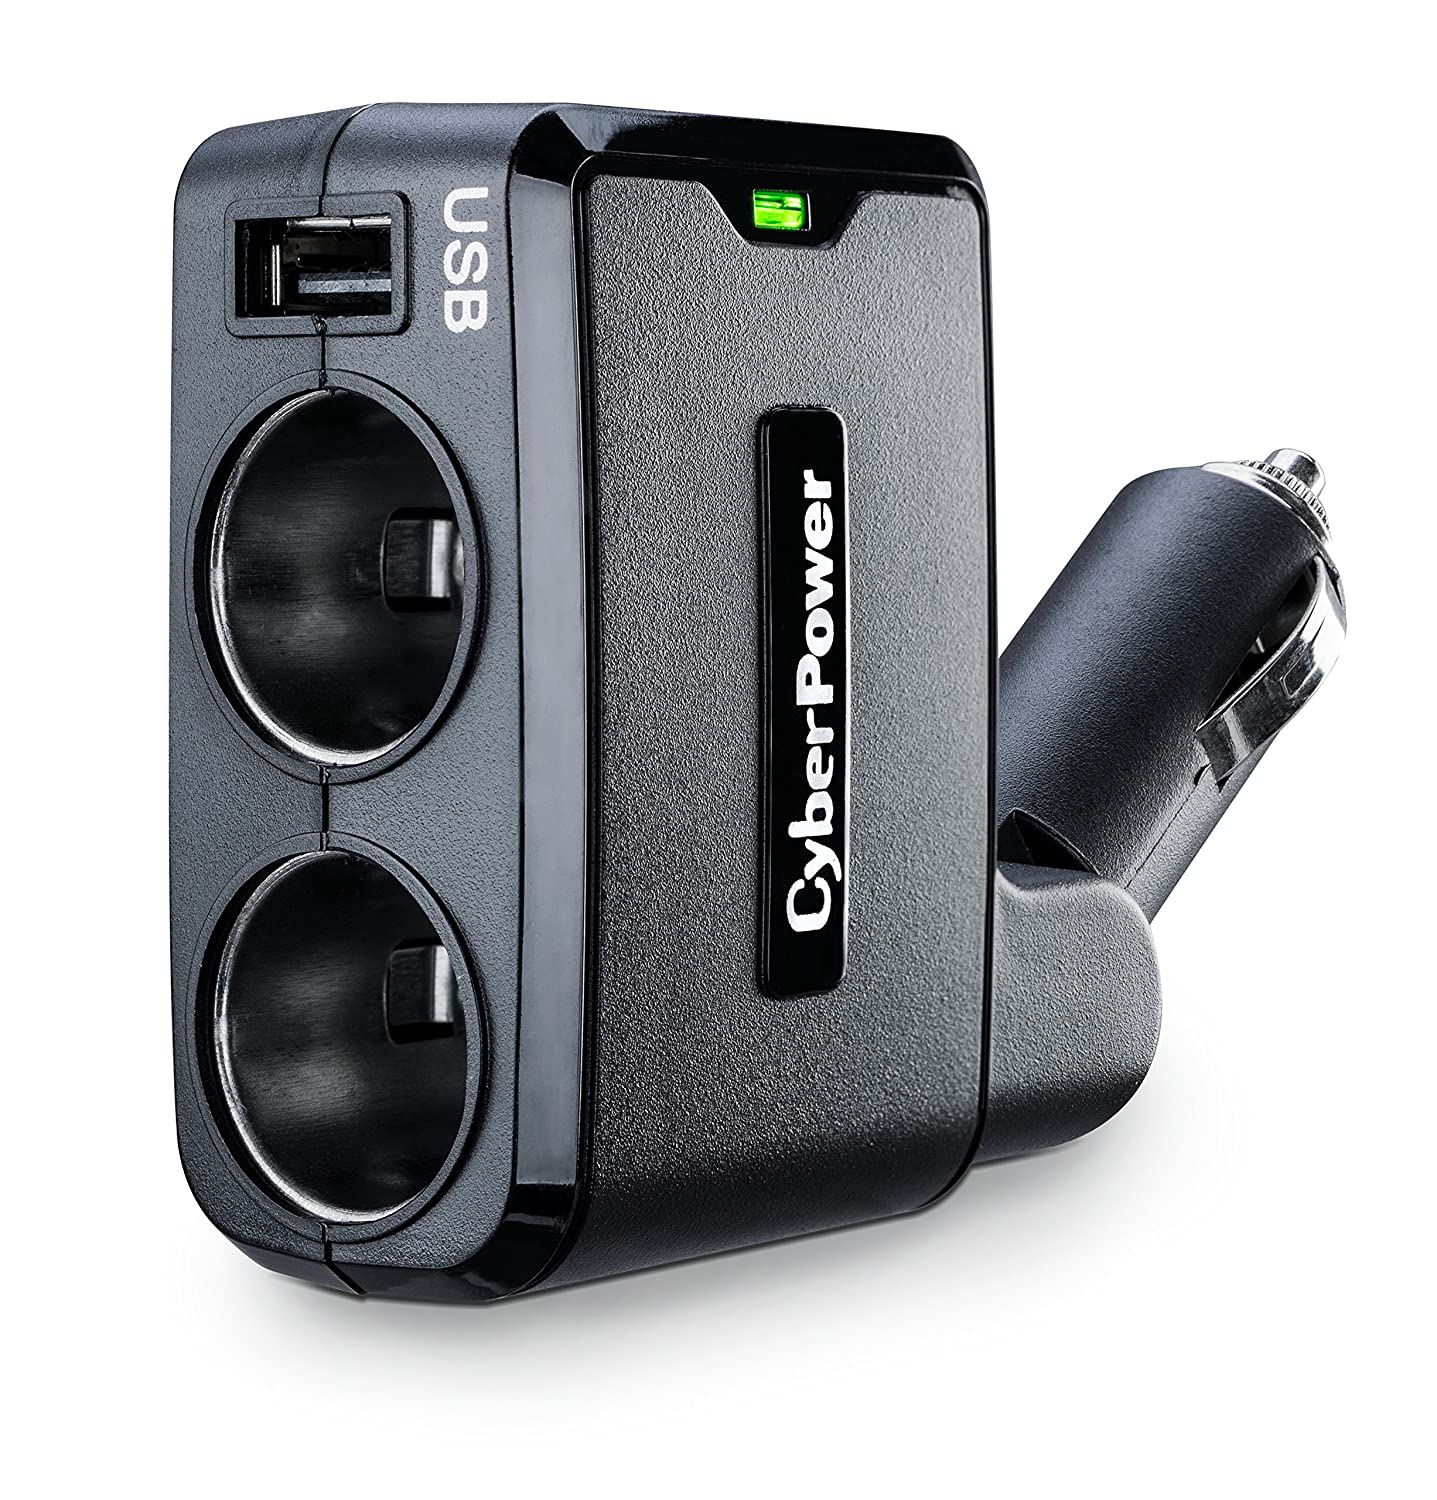 CyberPower CPTDC1U2DC USB Charger 2.1 Amp USB Port Compact Design Cyber Power Dual DC Outlets